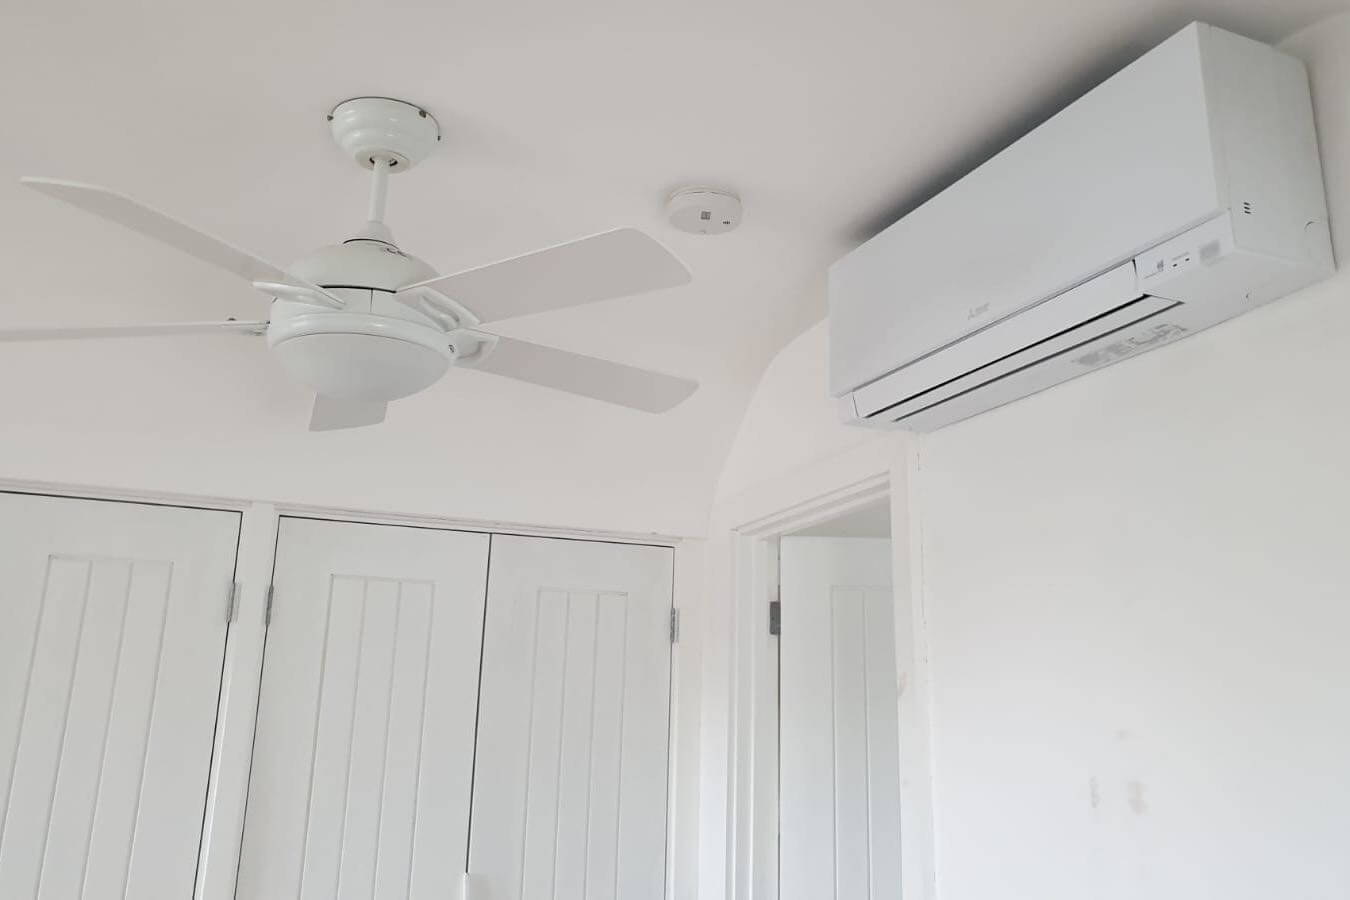 White wall mounted mitsubishi electric zen air conditioning unit in white room next to ceiling fan and cupboards